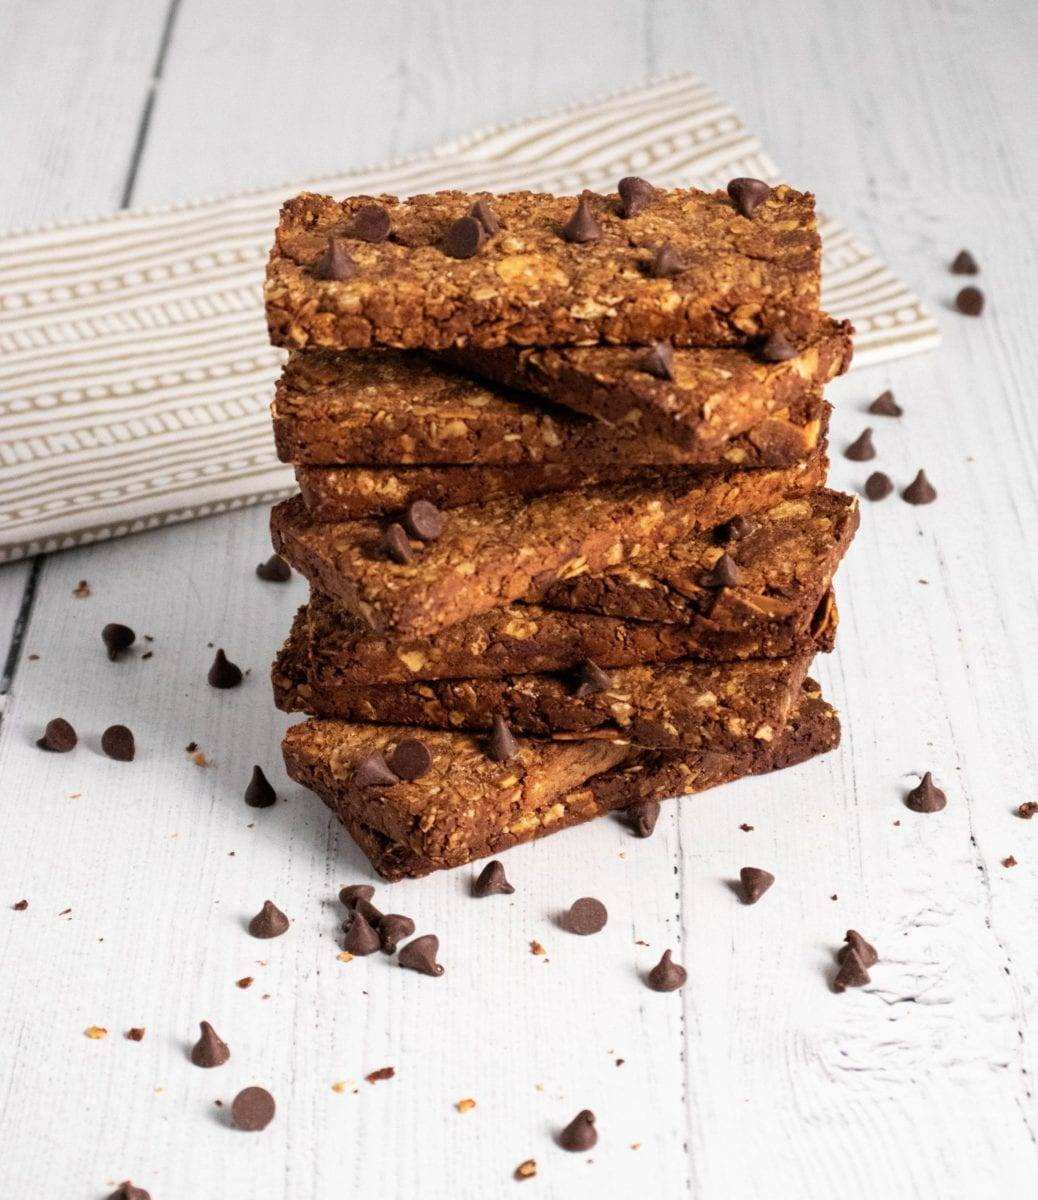 Chocolate Granola Almond Bars Meal prep Counting Macros